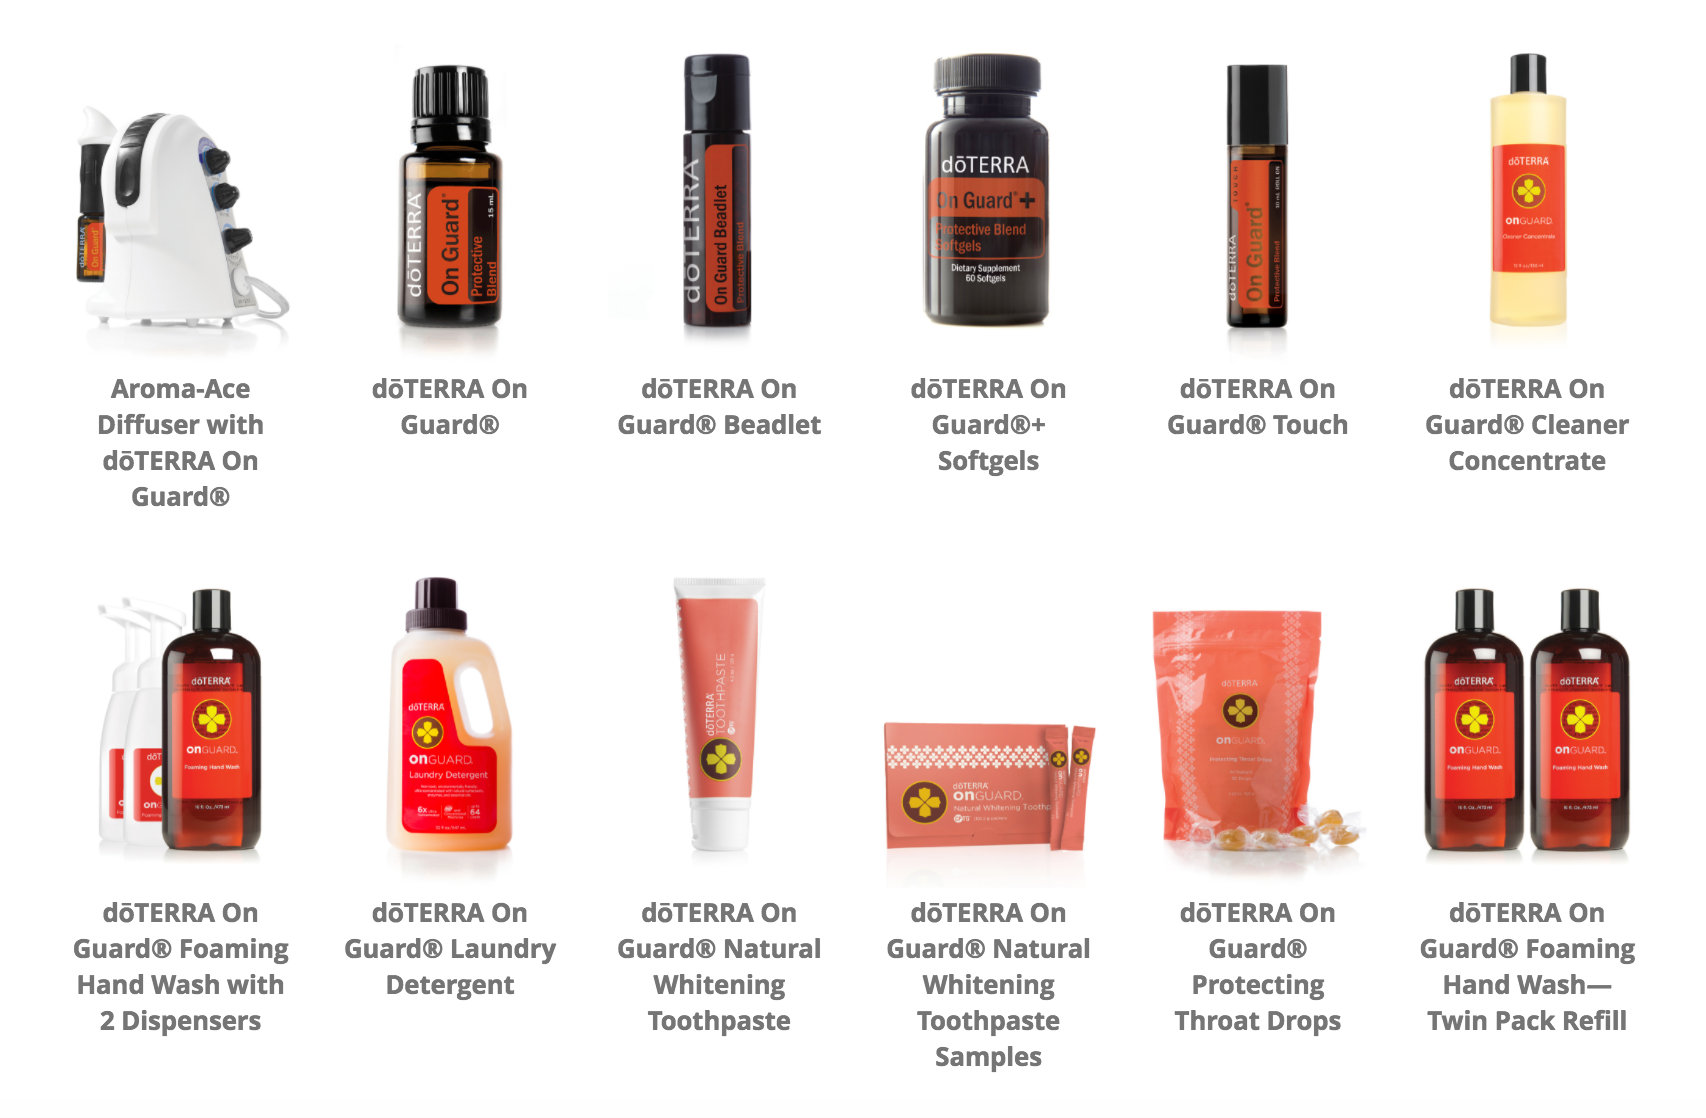 Proprietary doTERRA On Guard Protective Blend and cleaning products